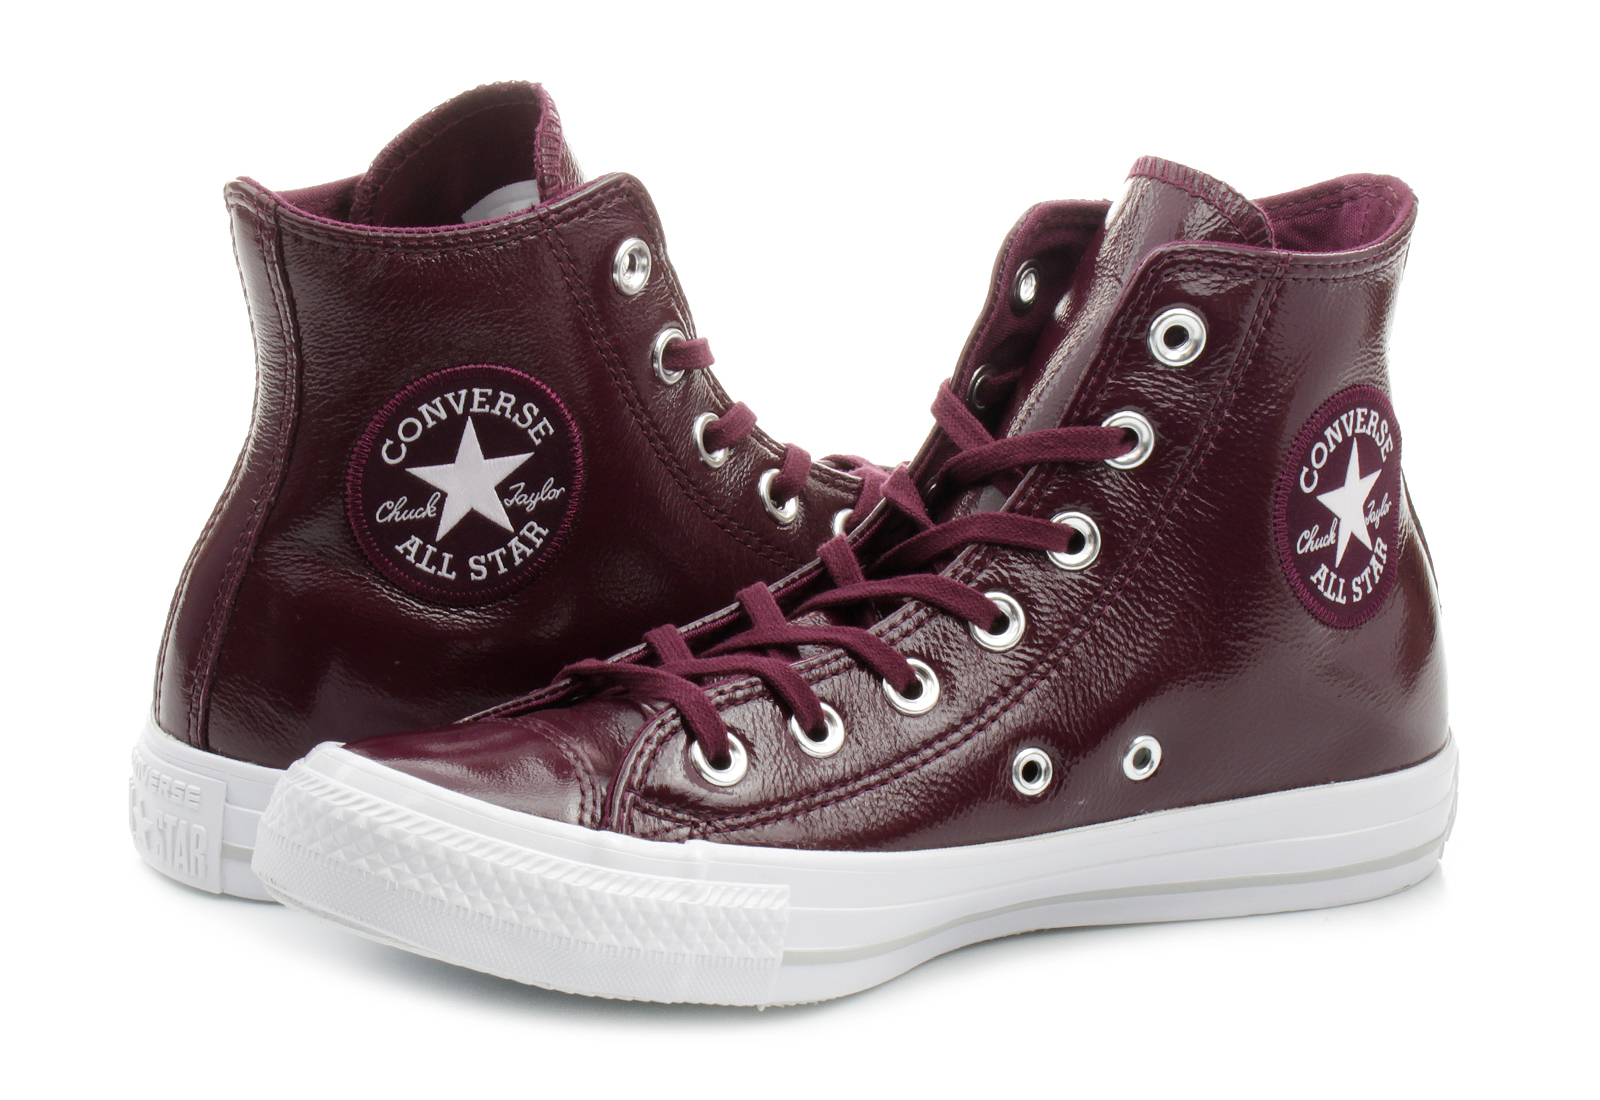 Step Vans For Sale >> Converse Sneakers - Ct As Patent Leather - 557939C - Online shop for sneakers, shoes and boots